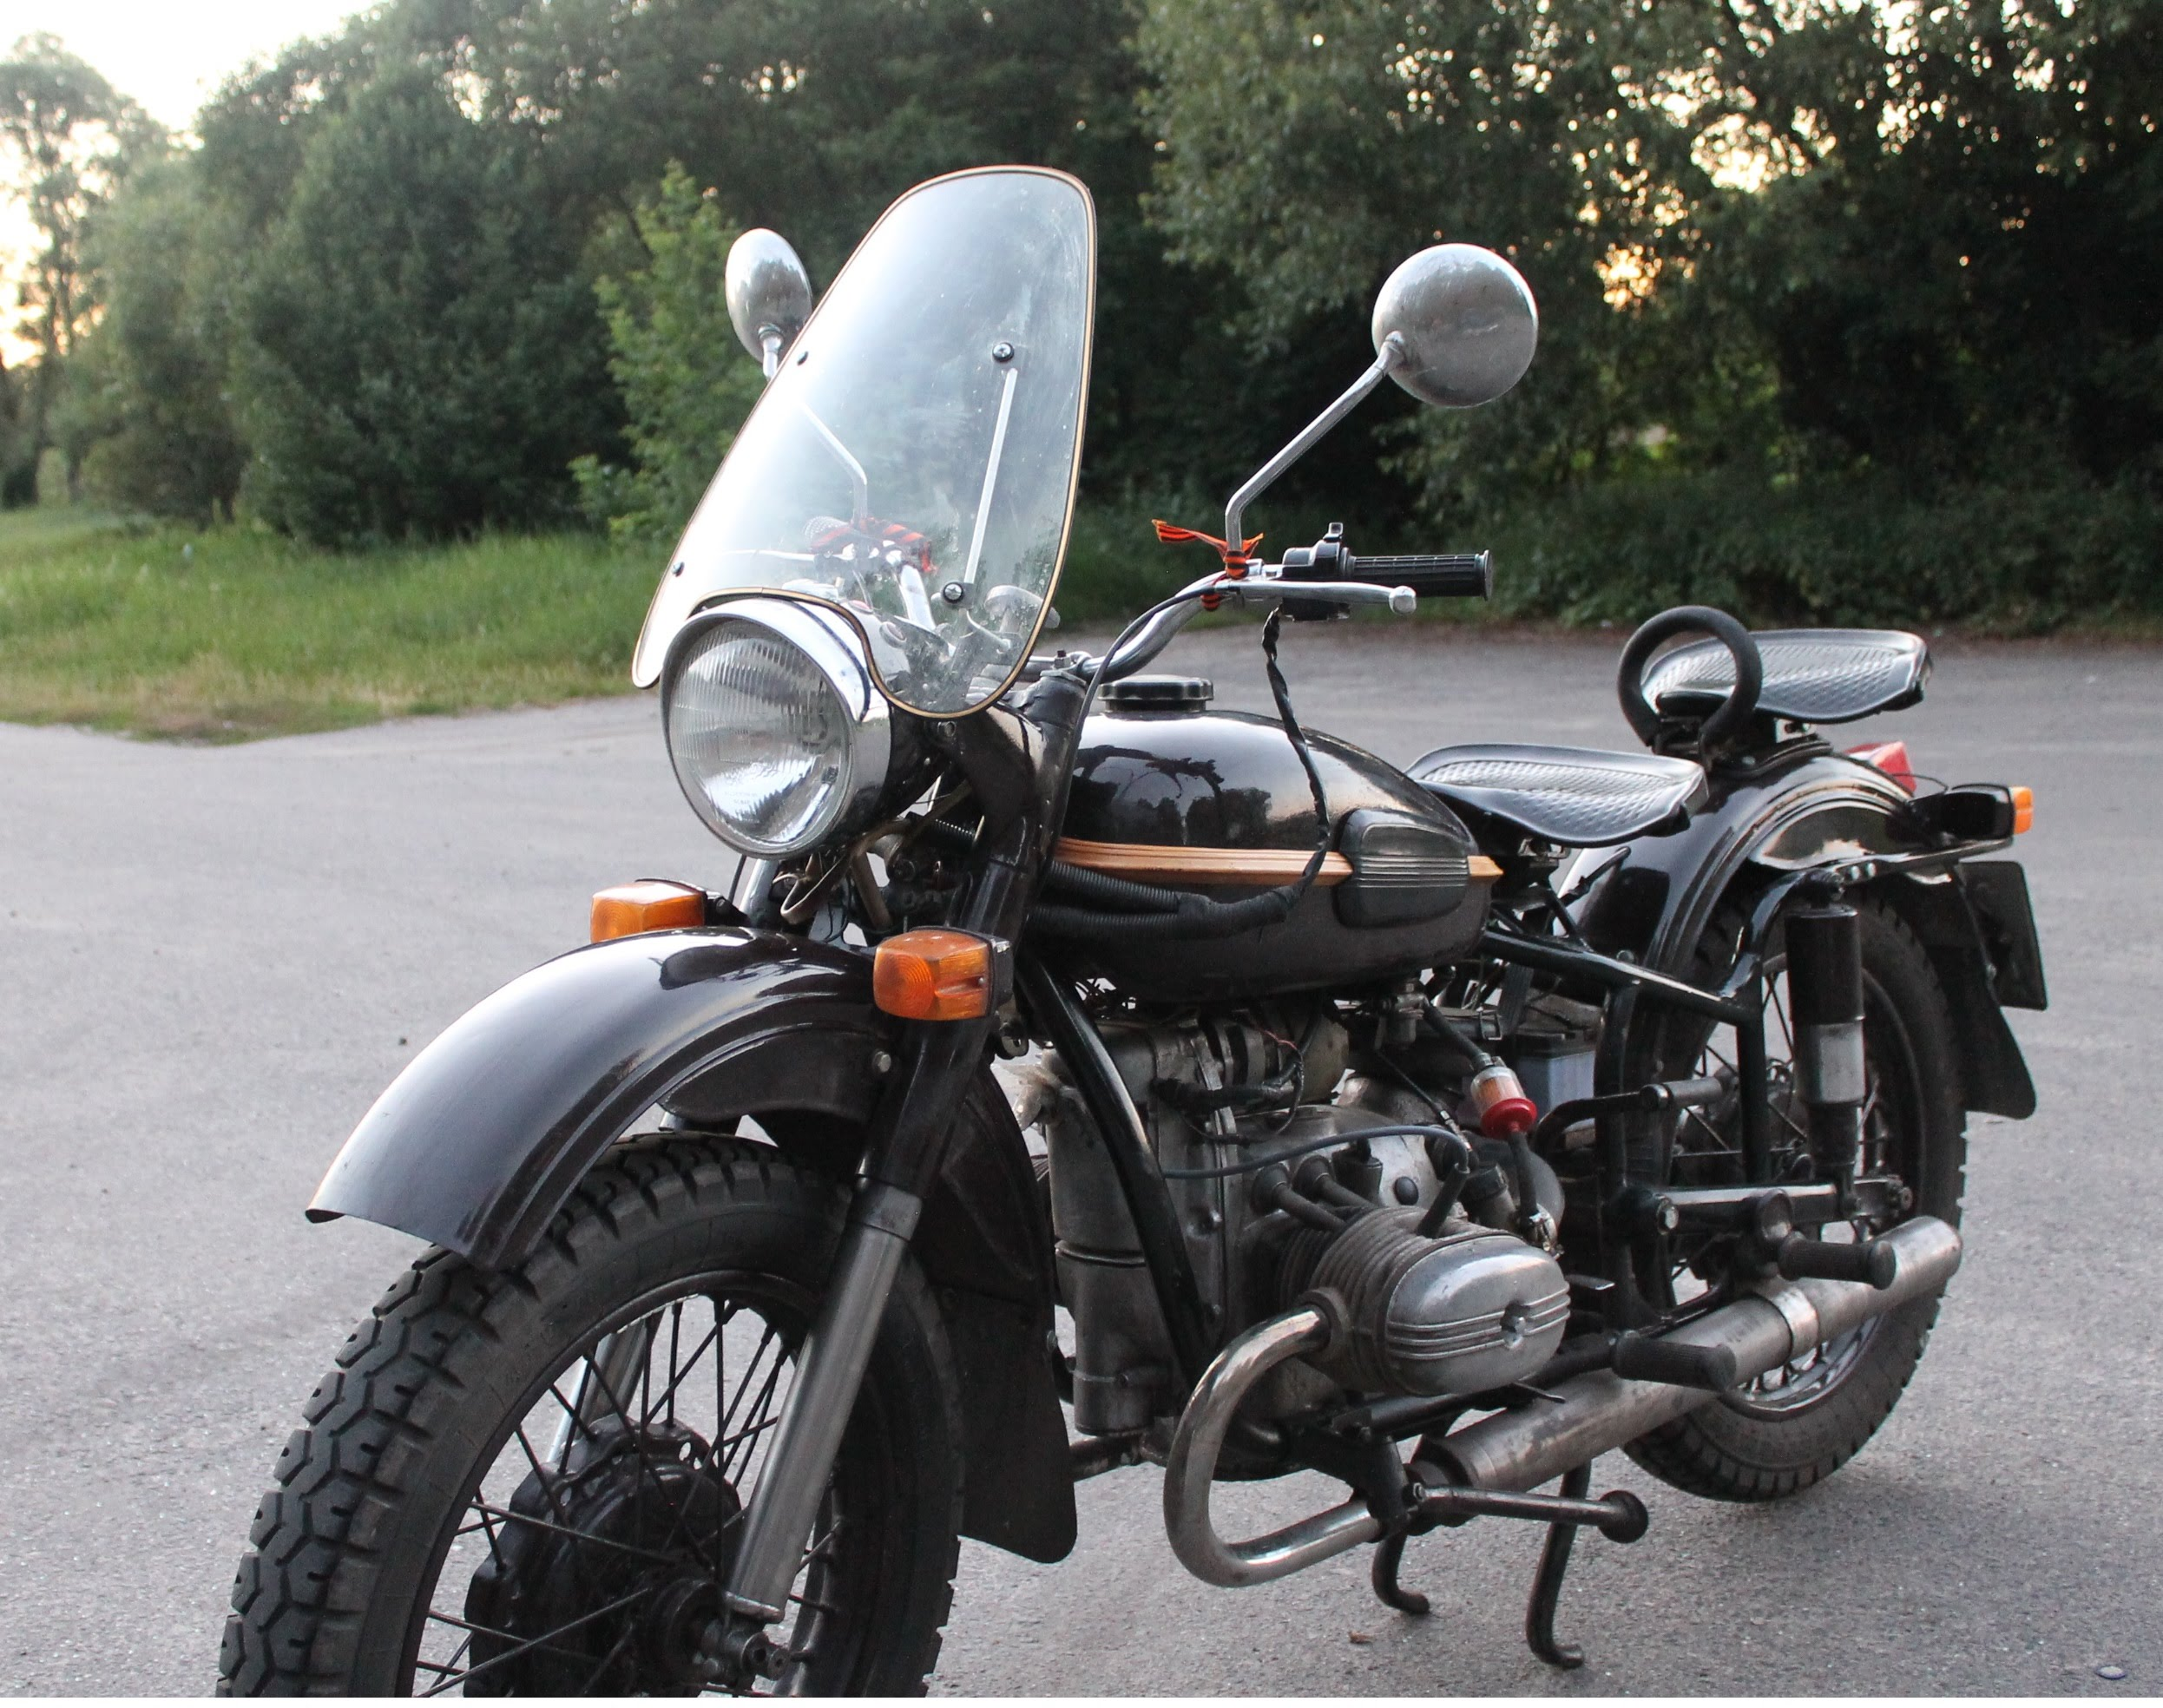 Ural M 66 with sidecar 1973 images #127006